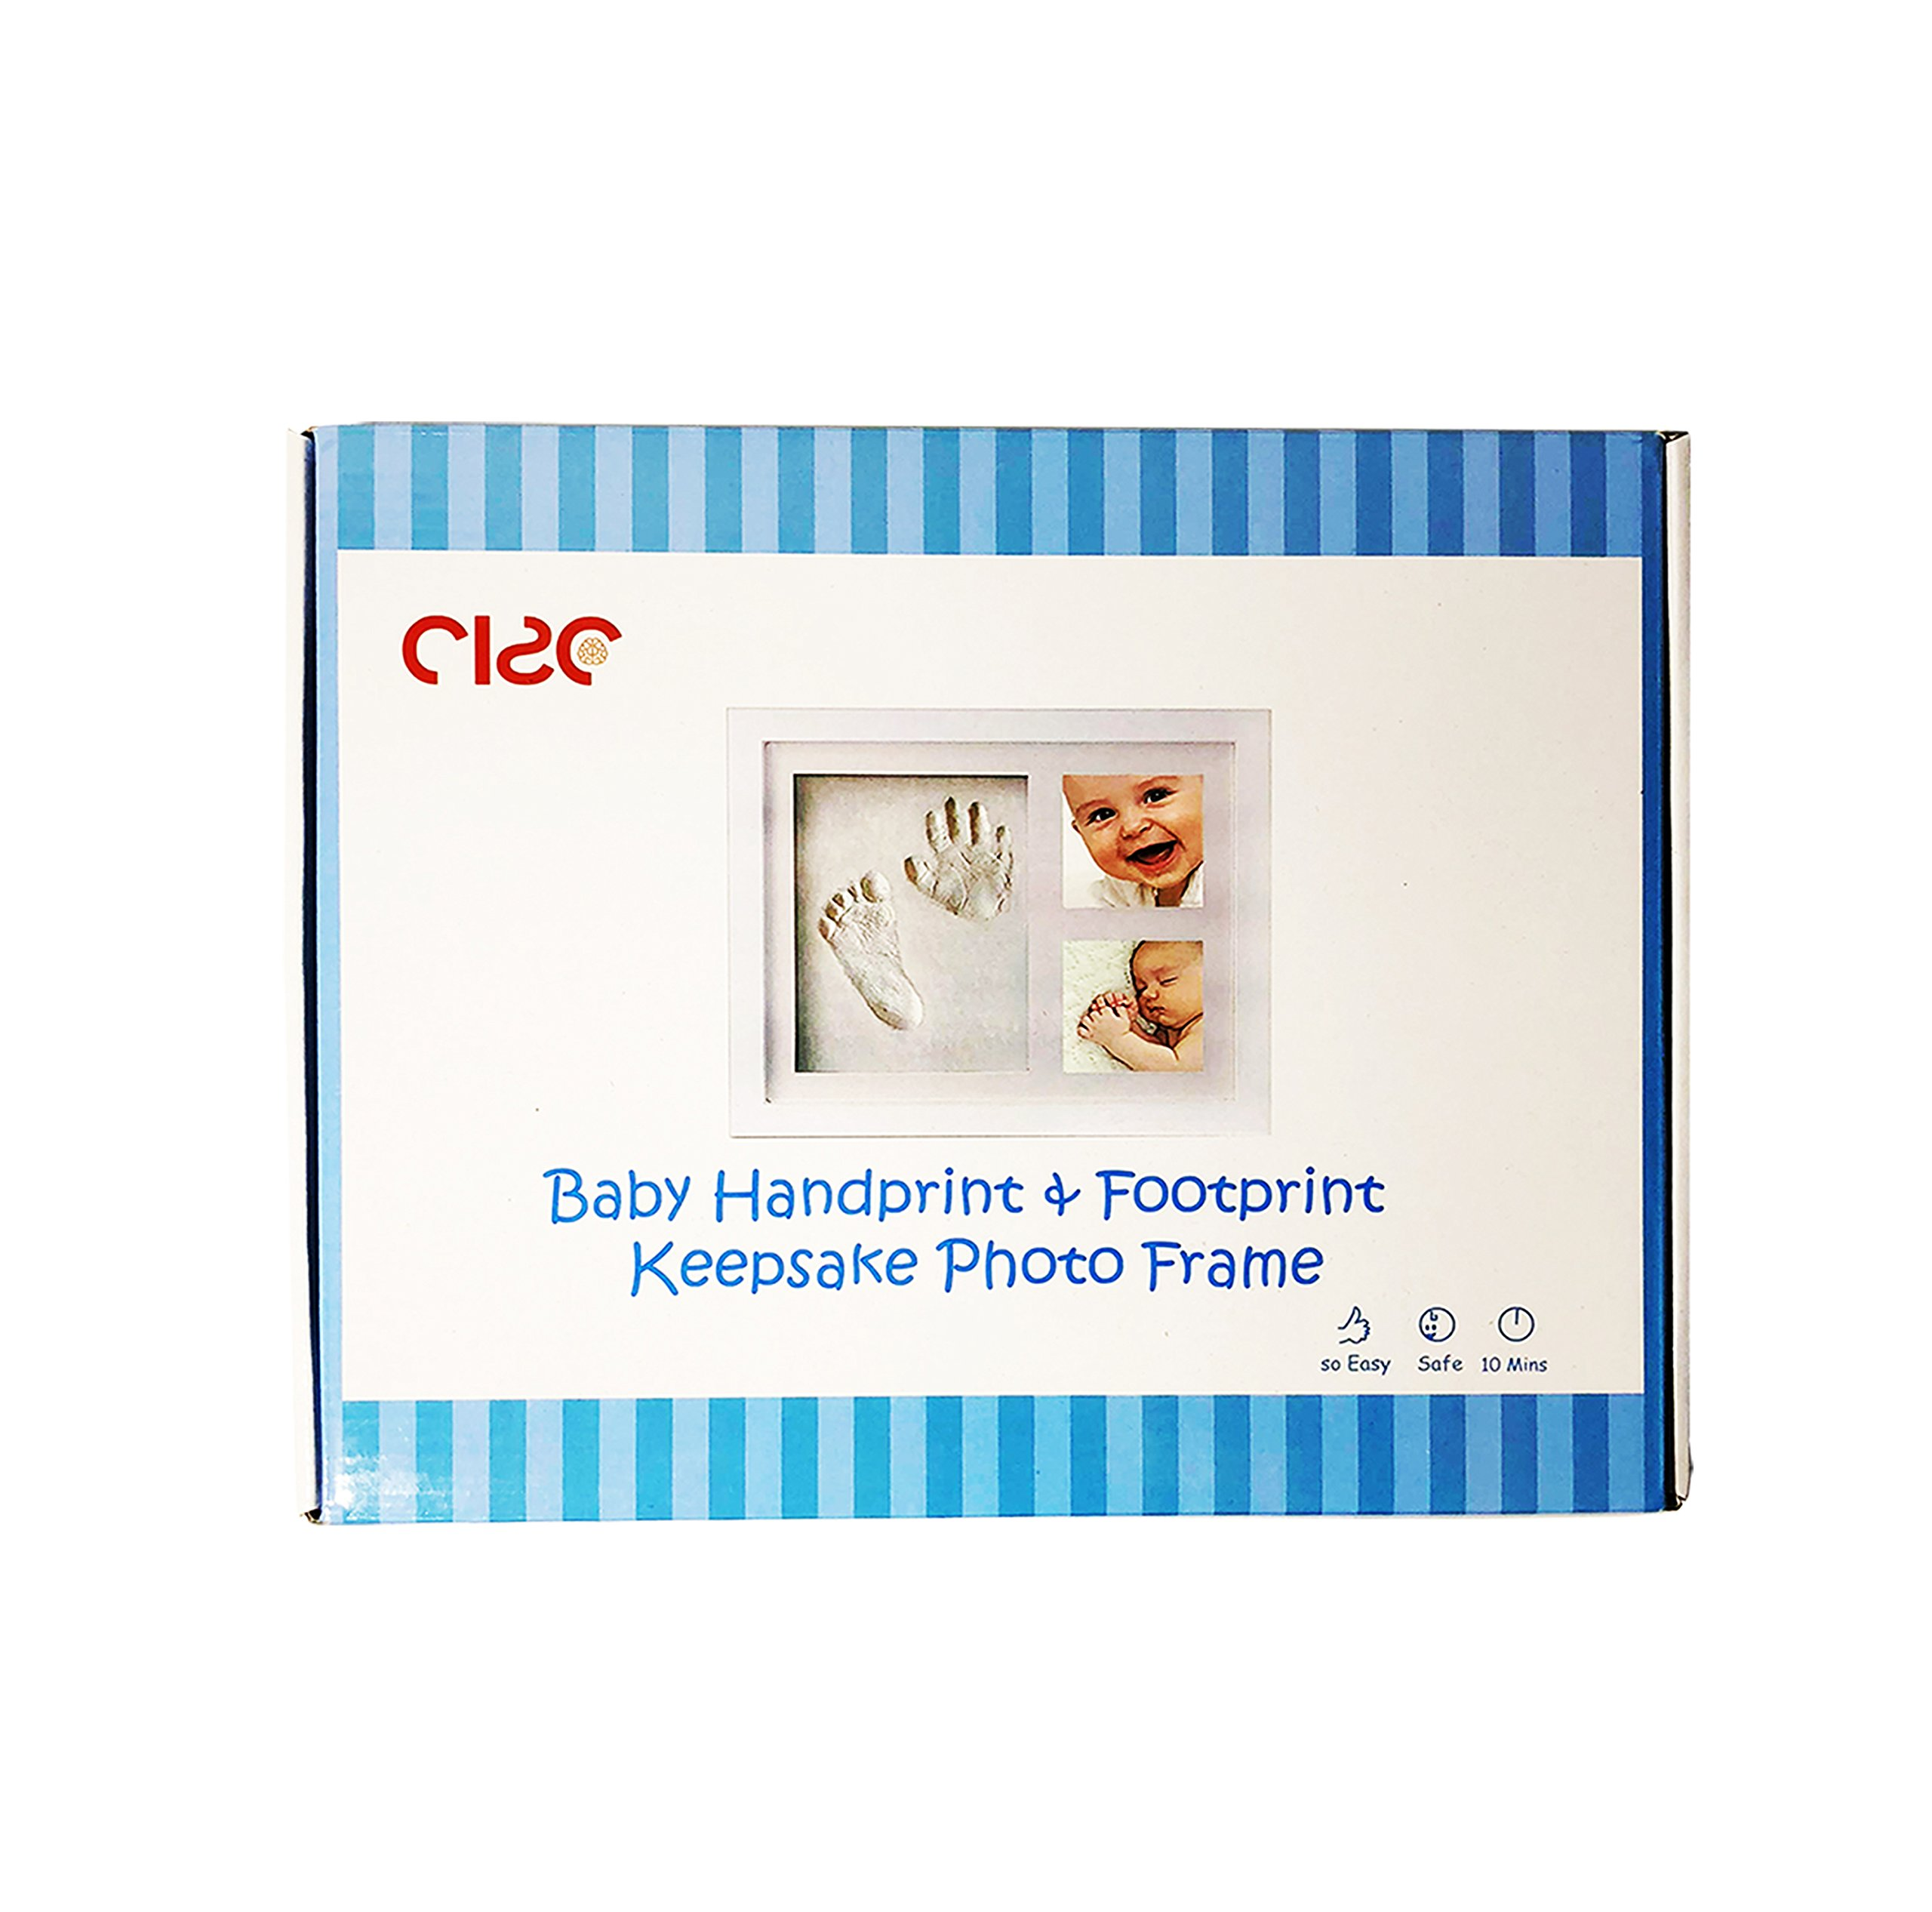 CISC Baby Handprint and Footprint 12' x 10' Keepsake Picture Frame- Frame Kits & Non-Toxic Clay! Best Gift in Baby Shower! Perfect Item for Registry! Personalized Album for Baby Boys & Girls! by CISC